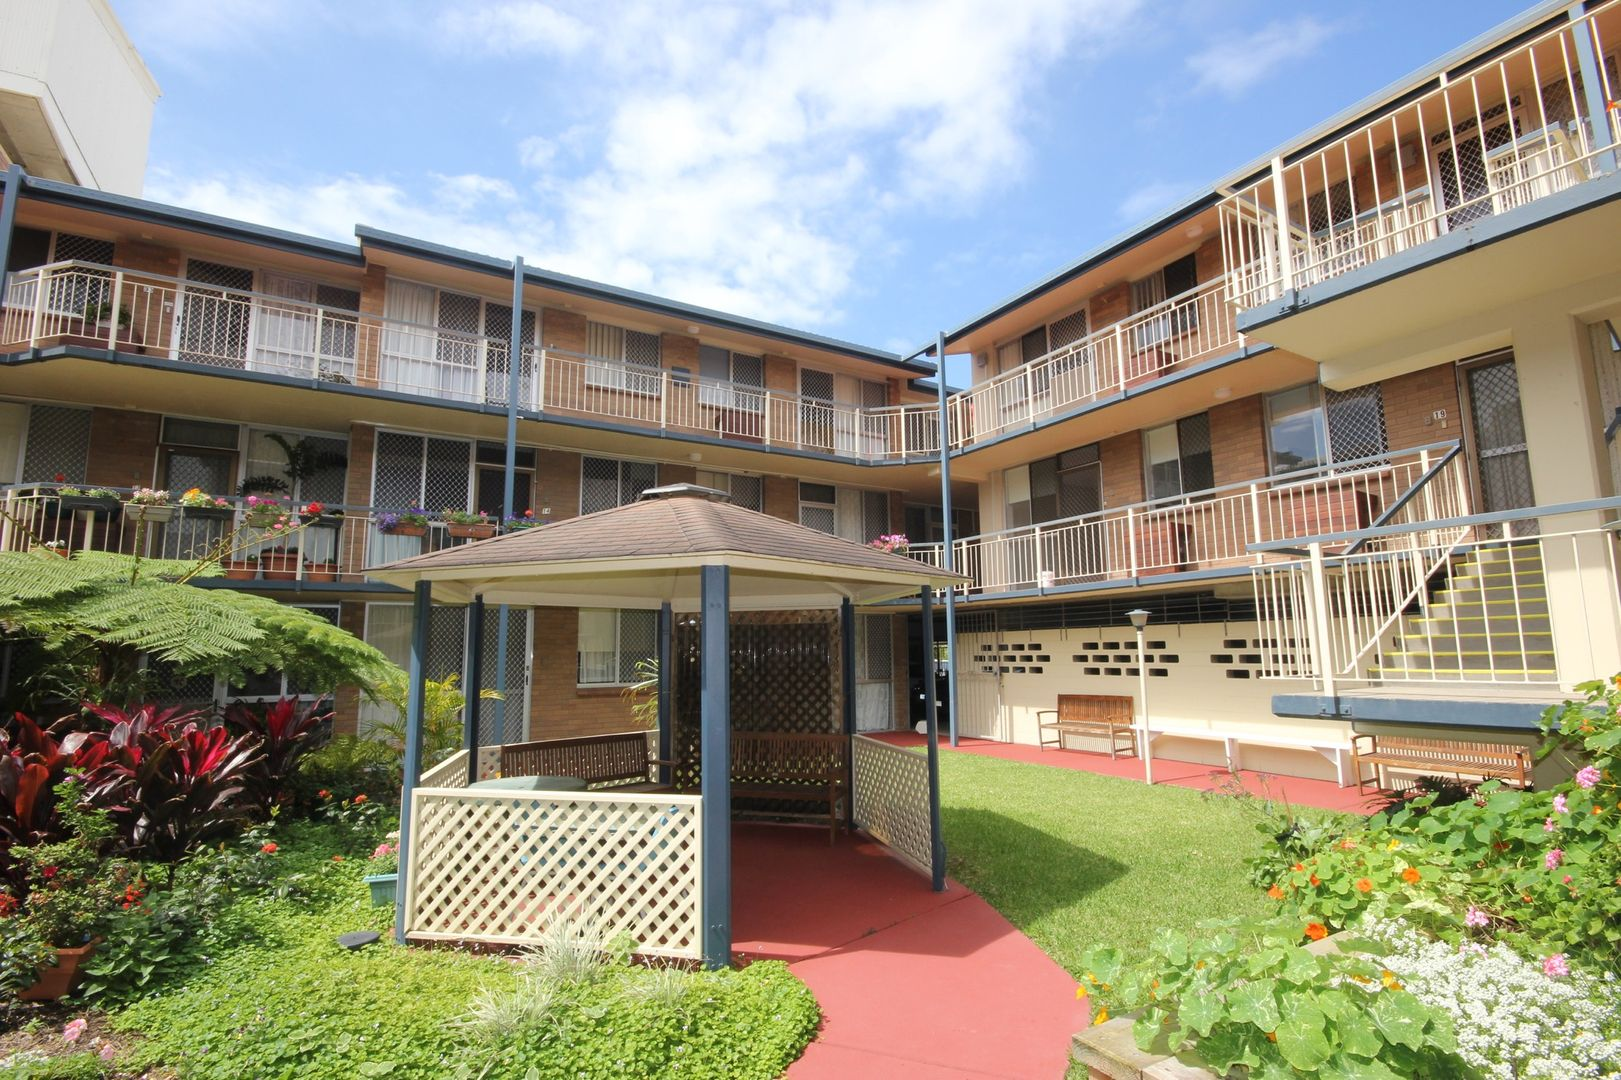 43 Macdonnell Road, Margate QLD 4019, Image 0